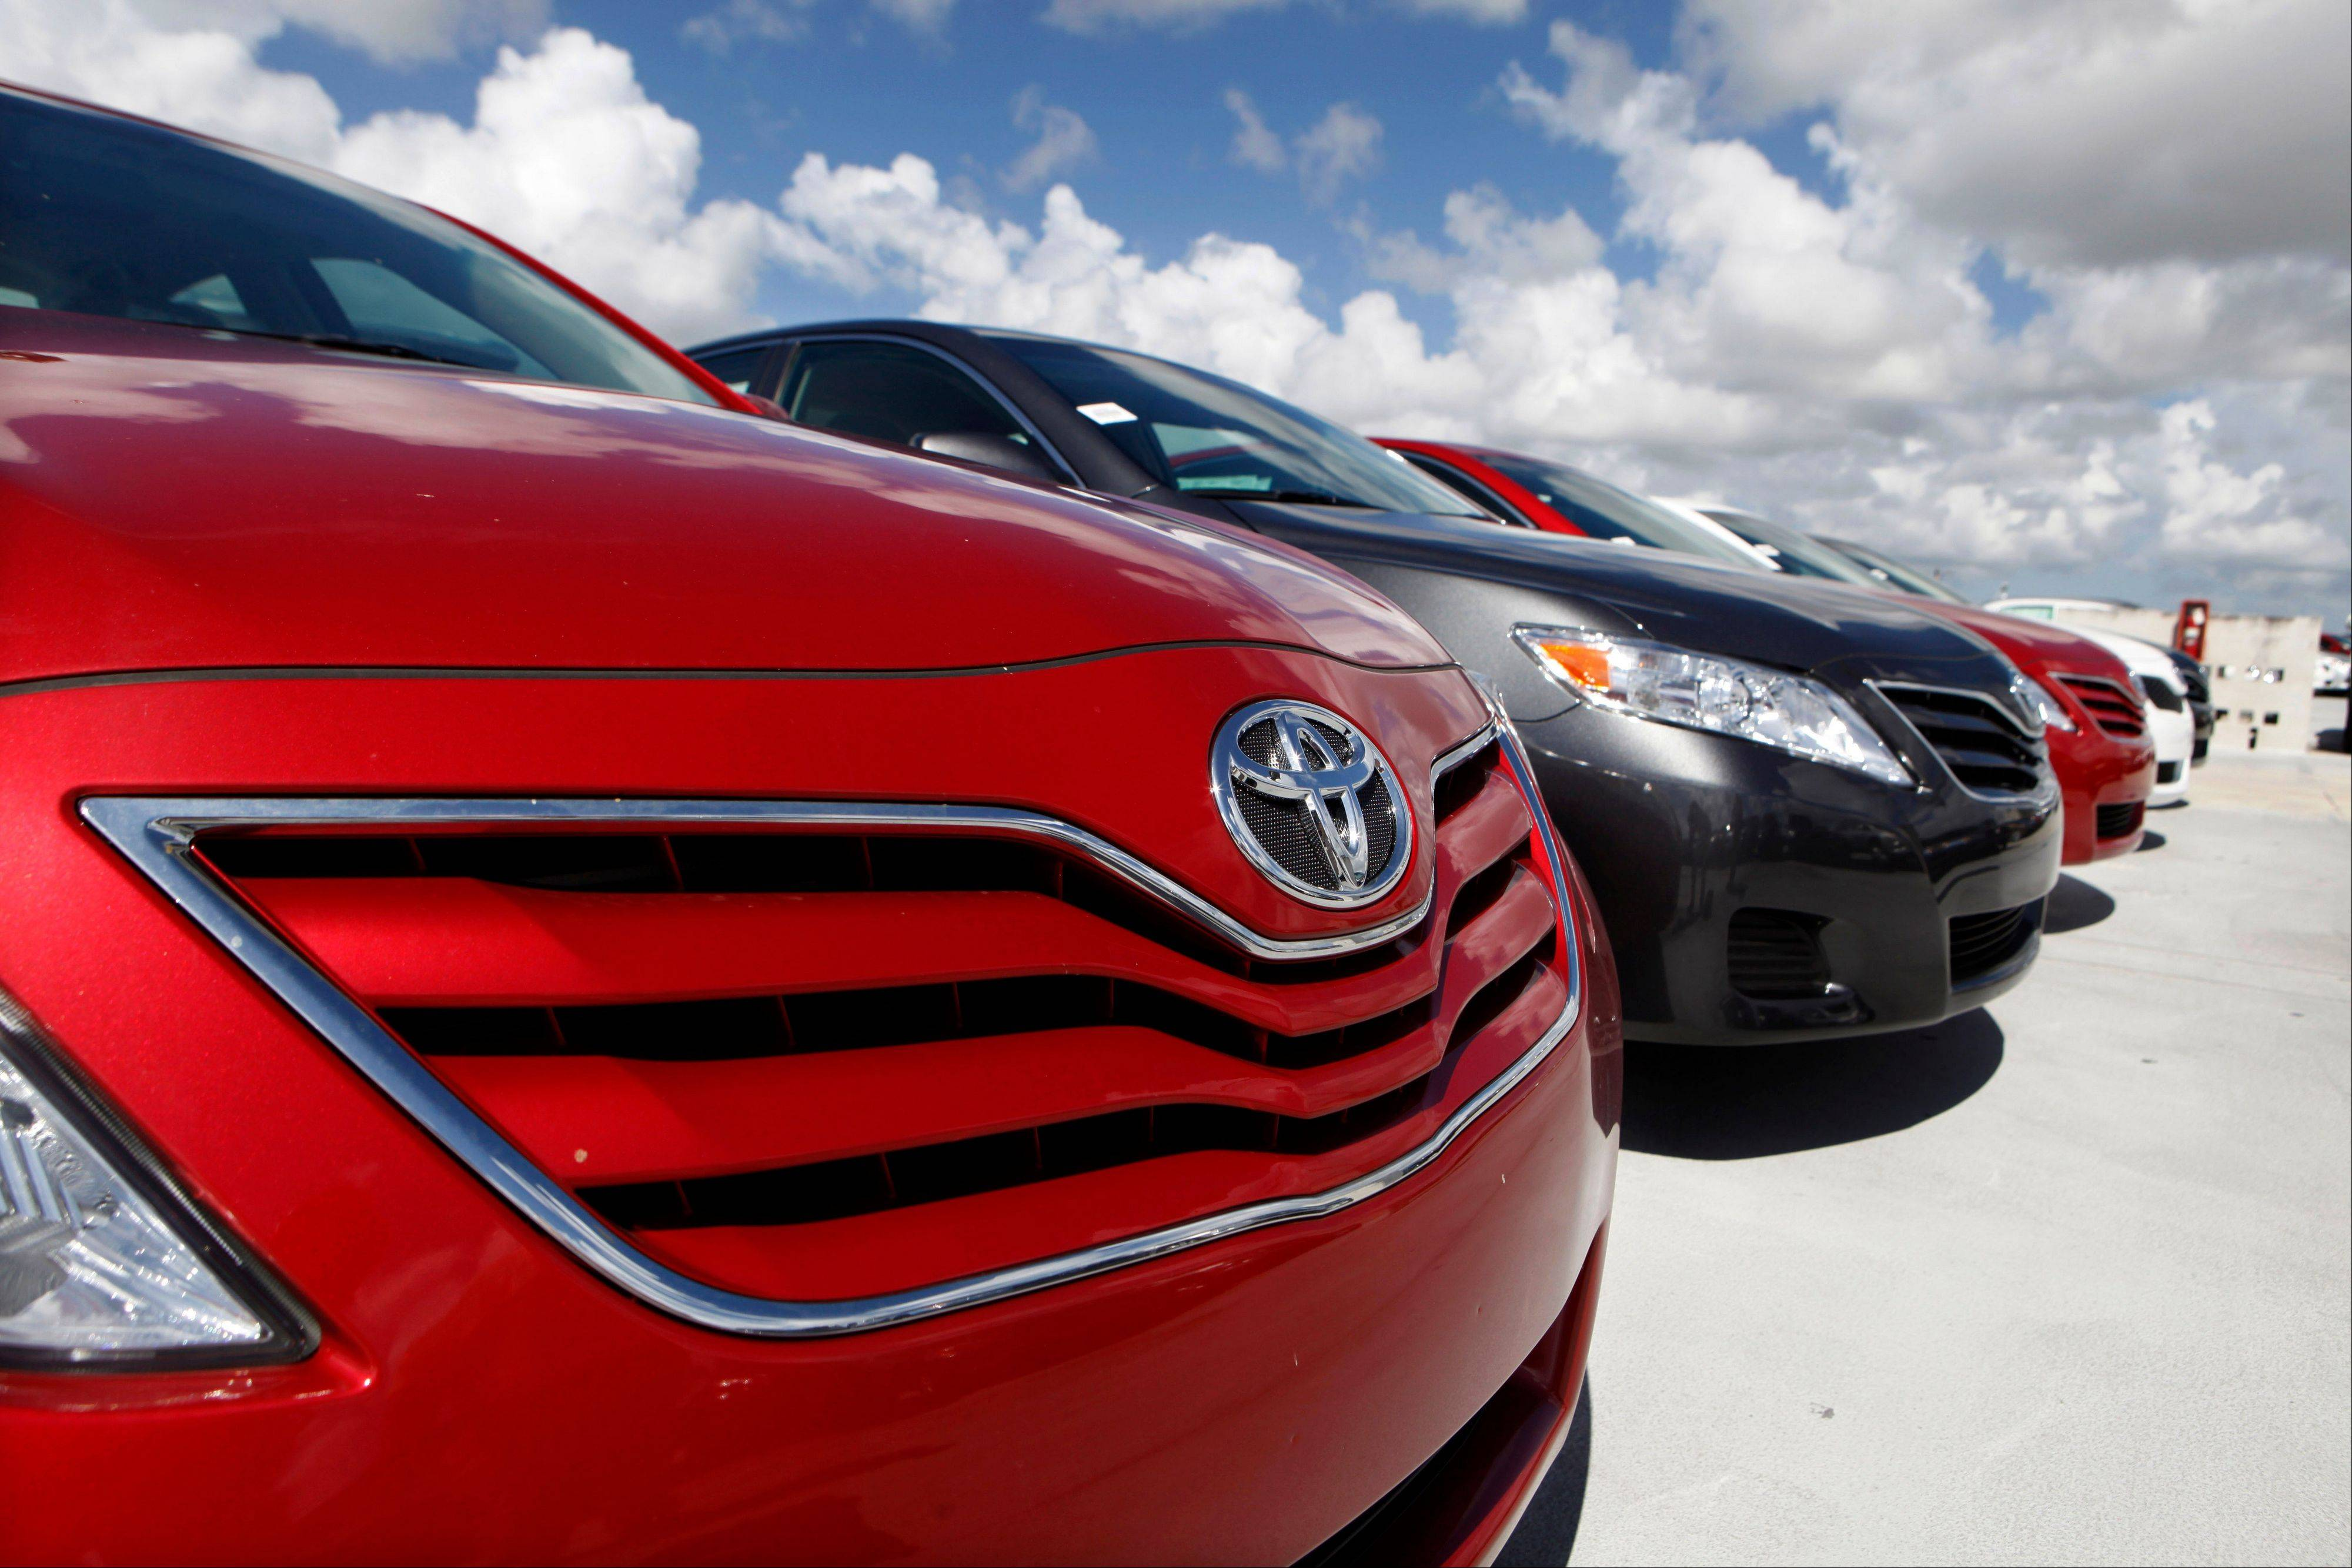 Toyota will not relinquish the Camry's spot as America's most popular car in 2013, a top executive told industry analysts on Tuesday.